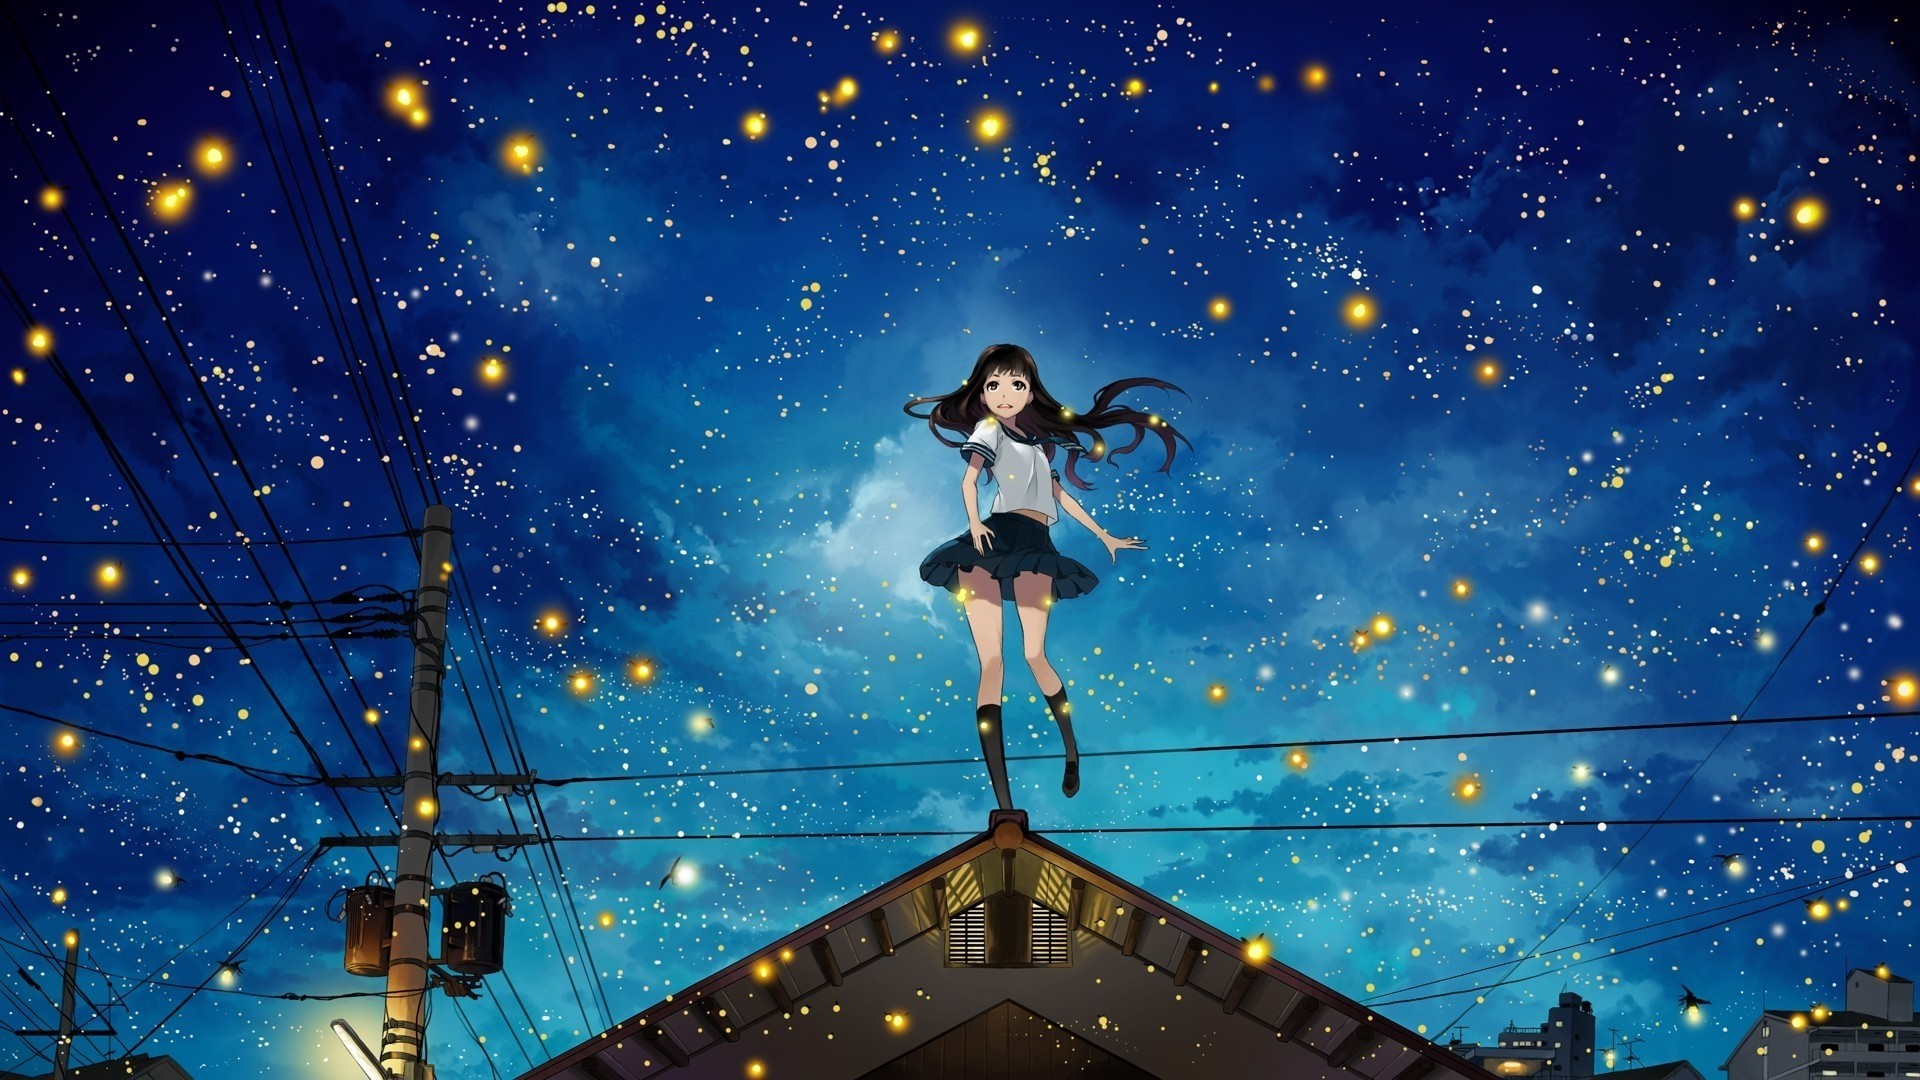 Night Anime Girl Free Wallpaper and Background